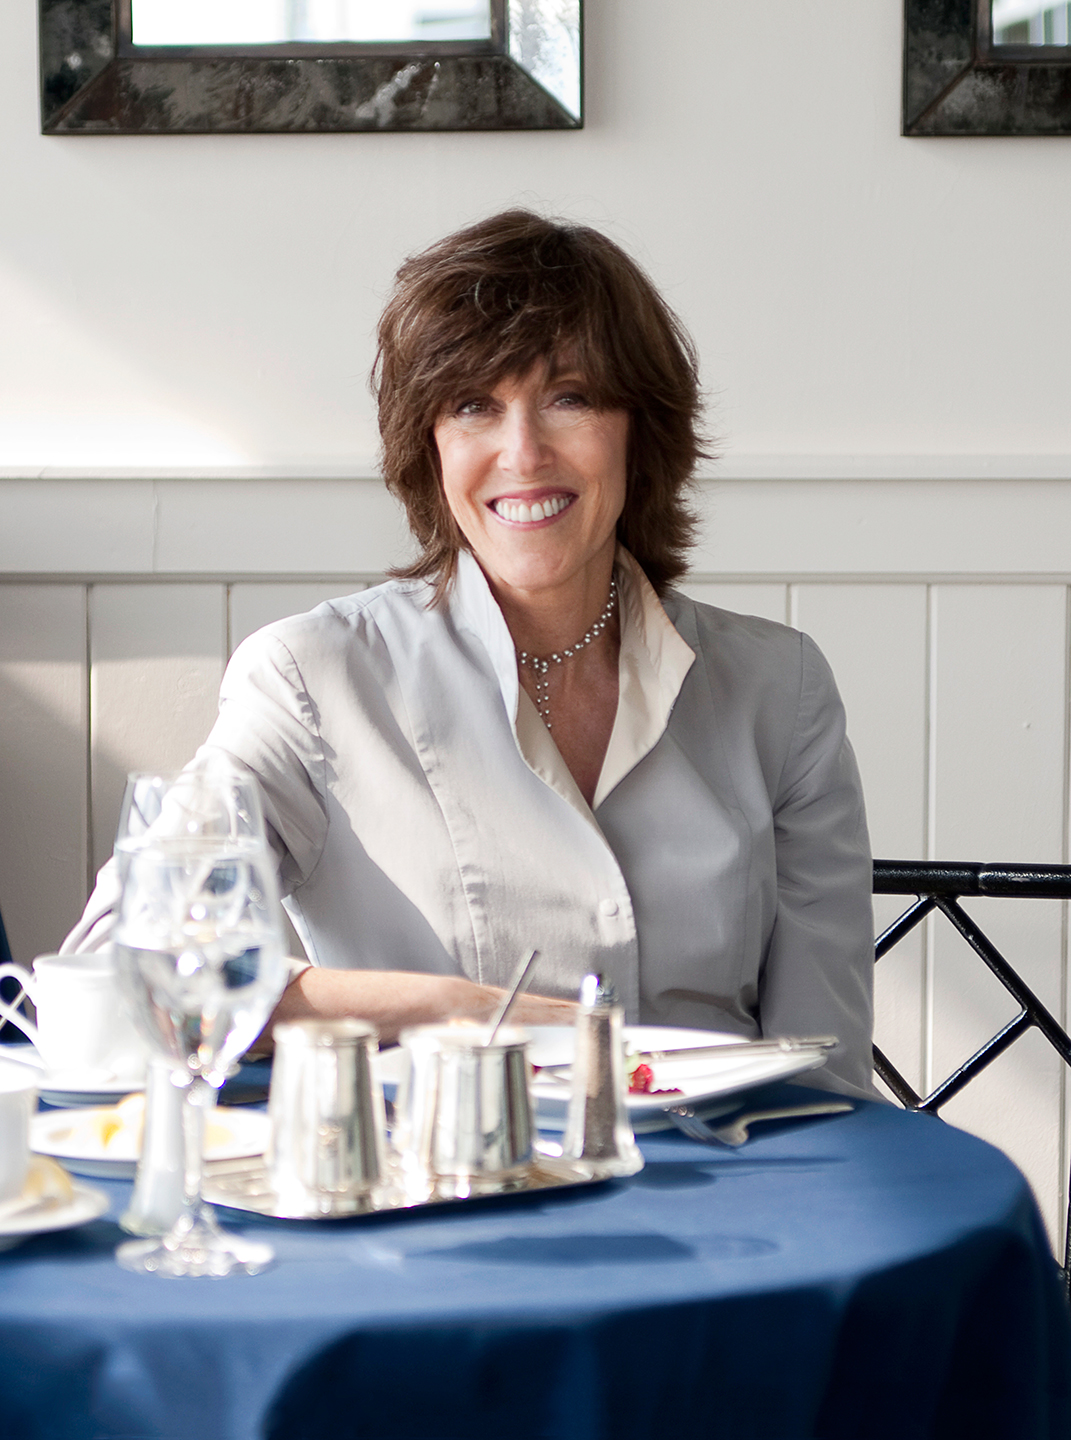 Nora Ephron - American writer and filmmaker known for her romantic comedies